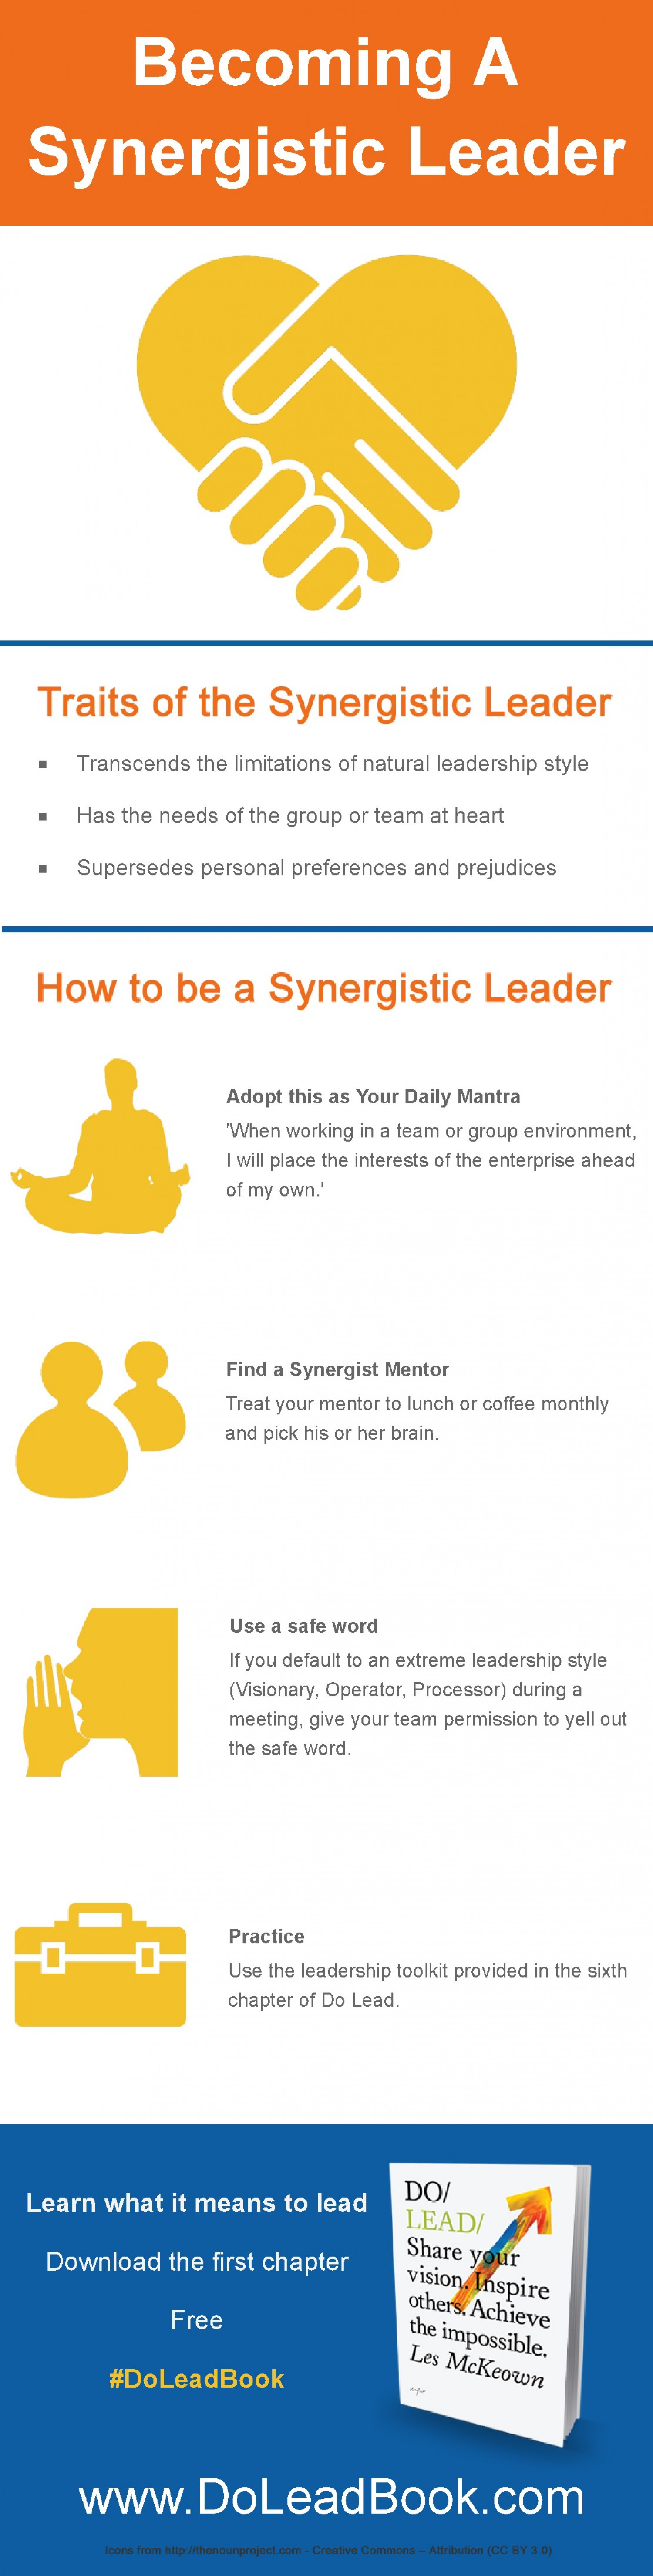 Becoming a Synergistic Leader Infographic